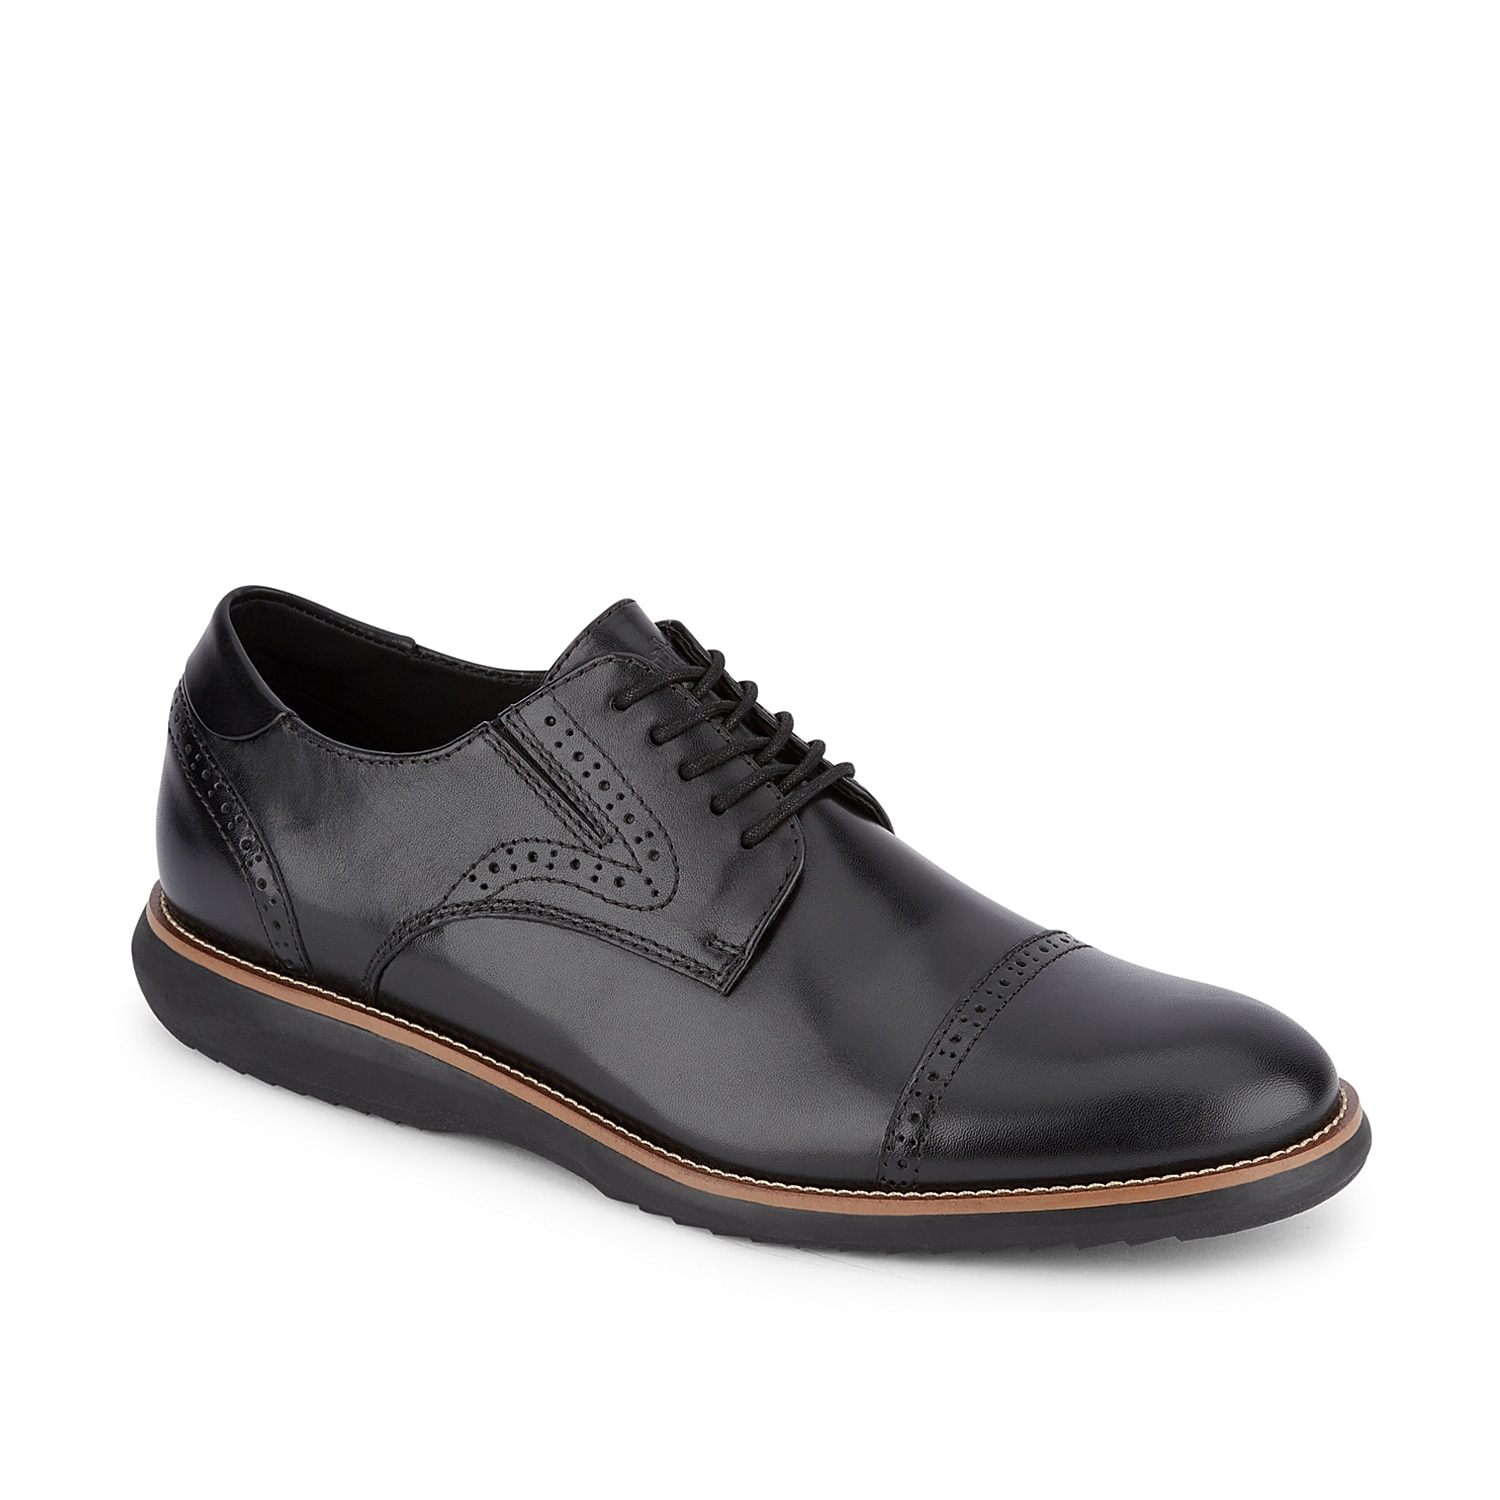 Keep it classy with the Beecham oxford from Dockers.Featuring Cleansport NTX anti-microbial technology, 360 Smart Flex, and Never Wet® water-resistant technology, this lace-up will have you covered for anything!